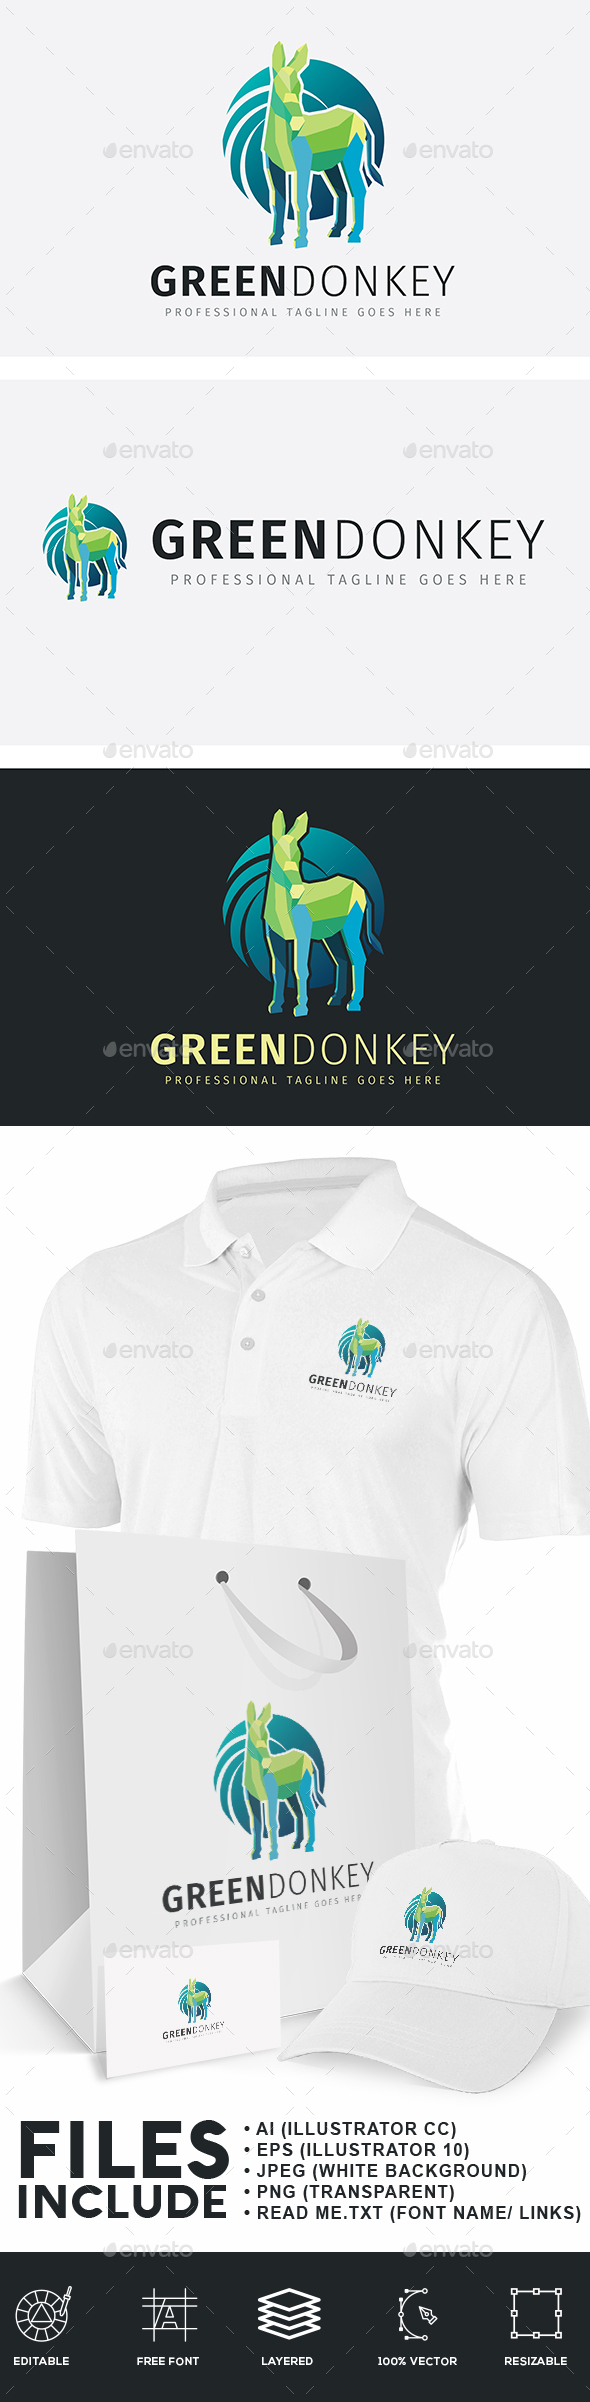 Green Donkey Logo - Animals Logo Templates